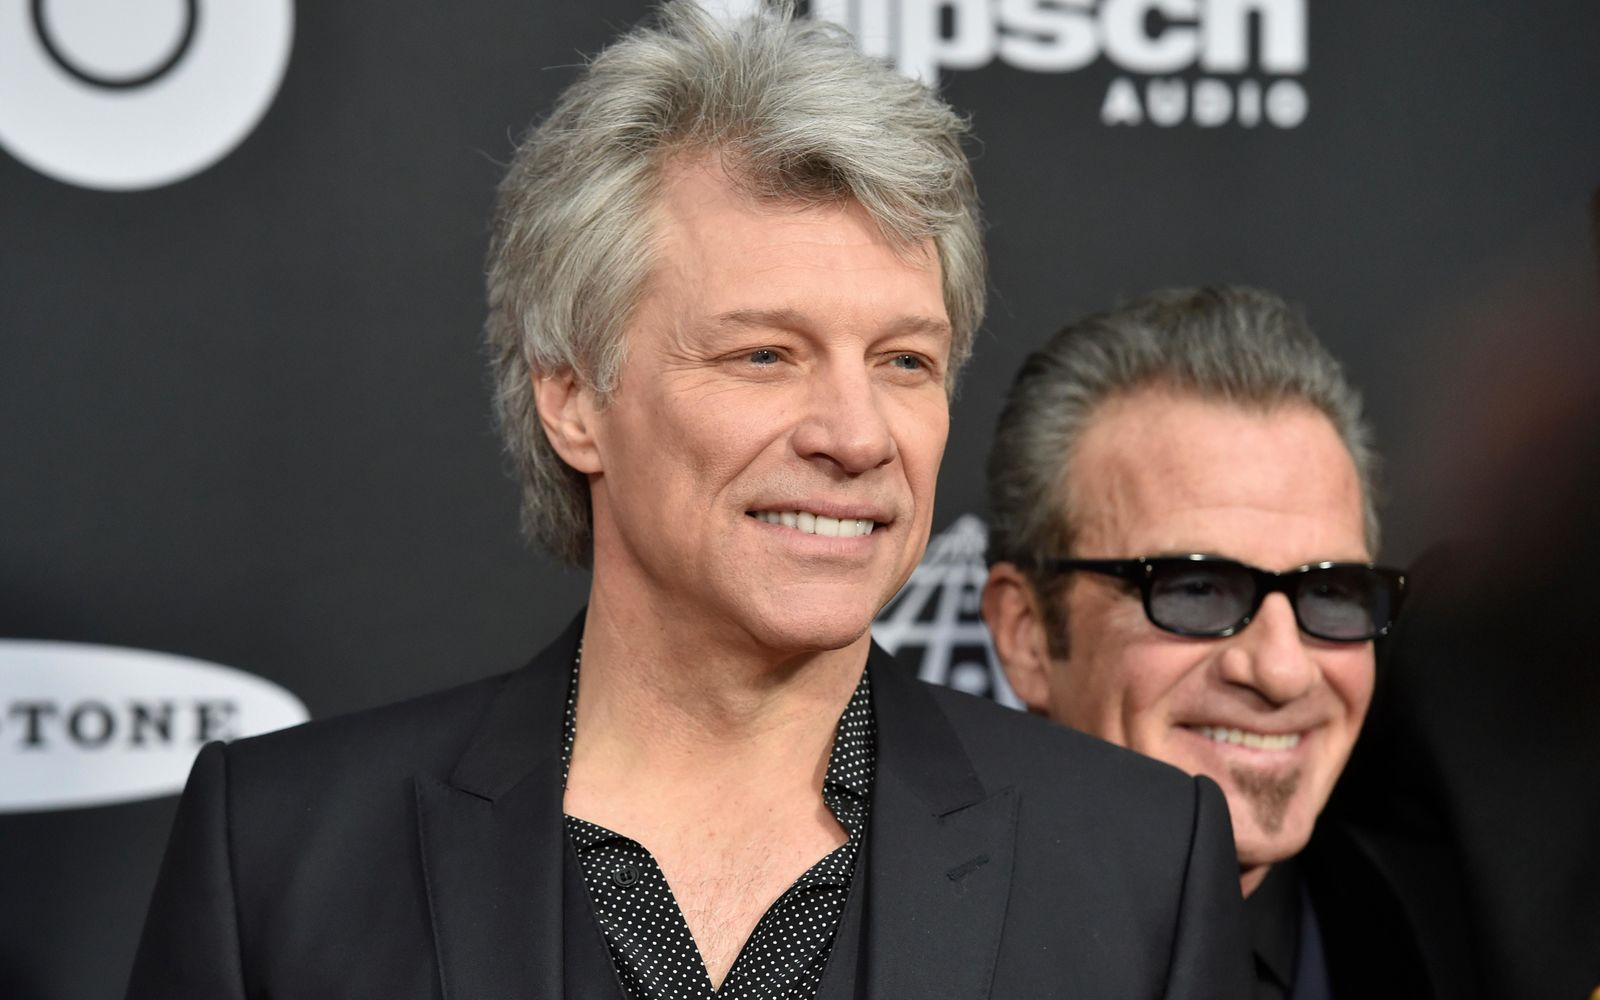 Jon Bon Jovi arrives at the red carpet before the Rock and Roll Hall of Fame induction ceremony, Saturday, April 14, 2018, in Cleveland. (AP Photo/David Richard)